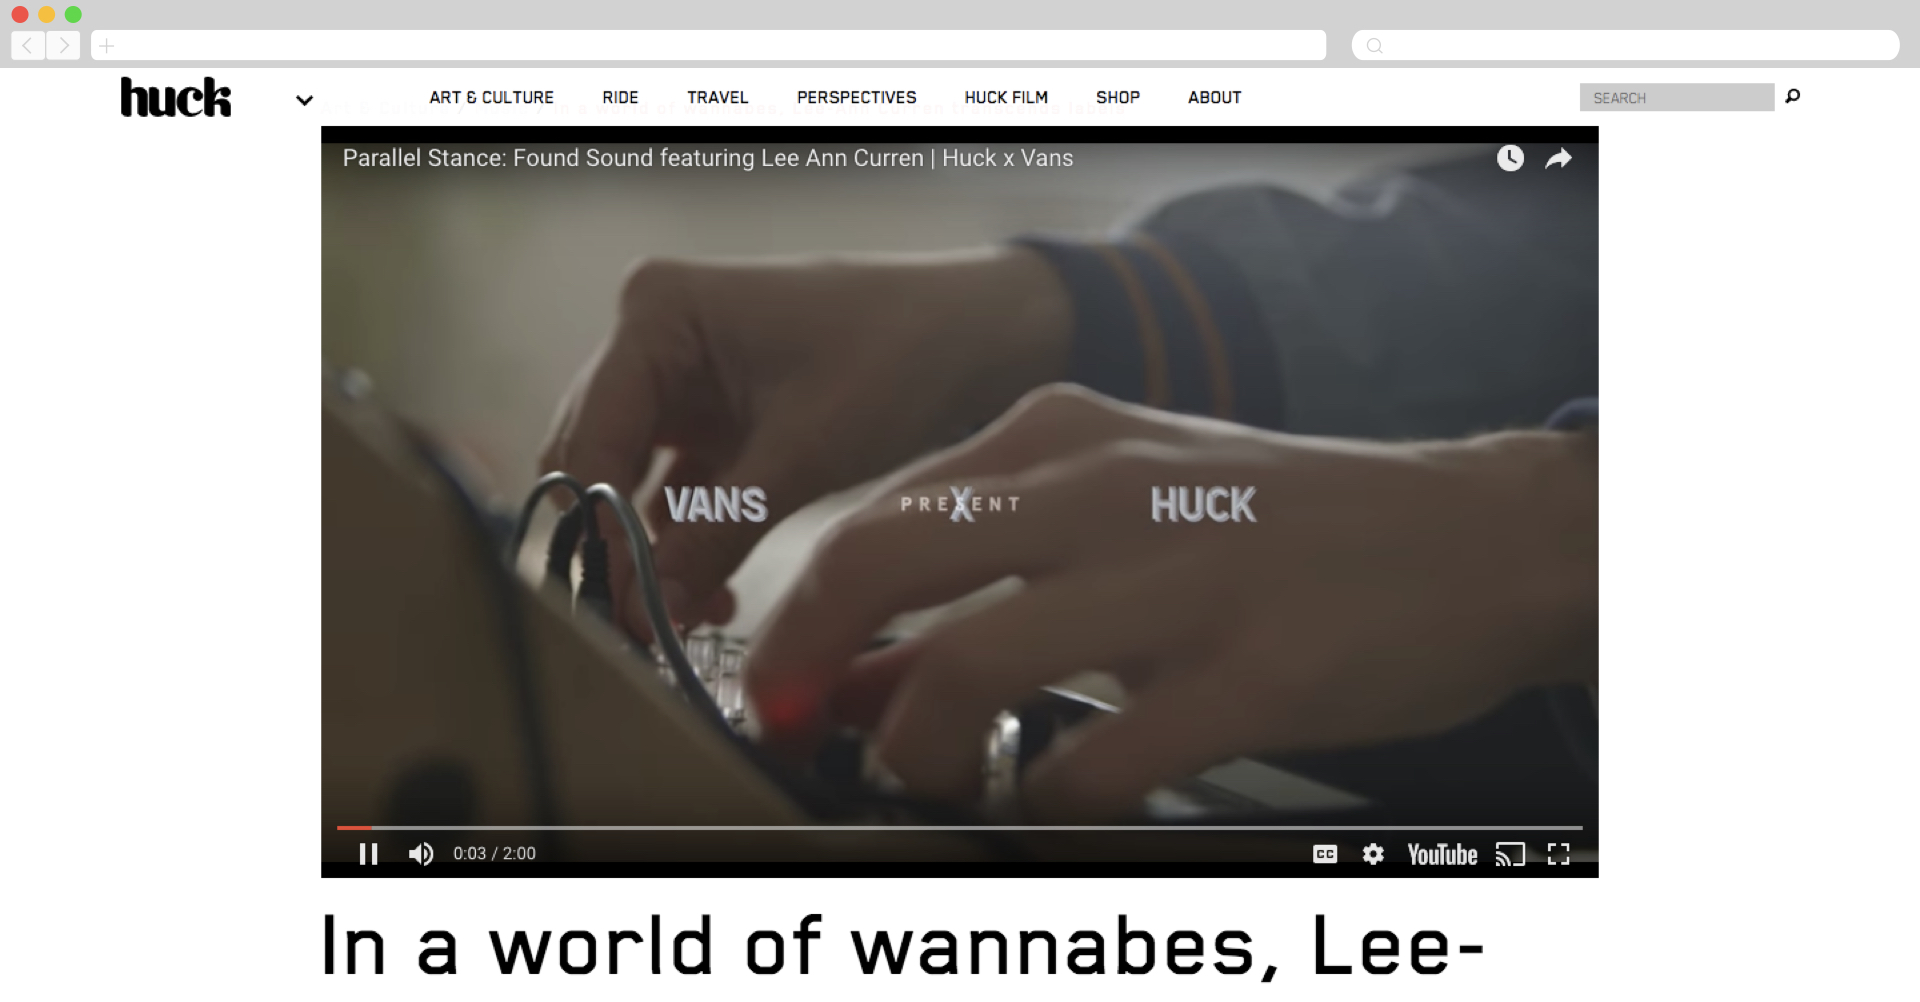 Van partners up with Huck to reach a niche audience.